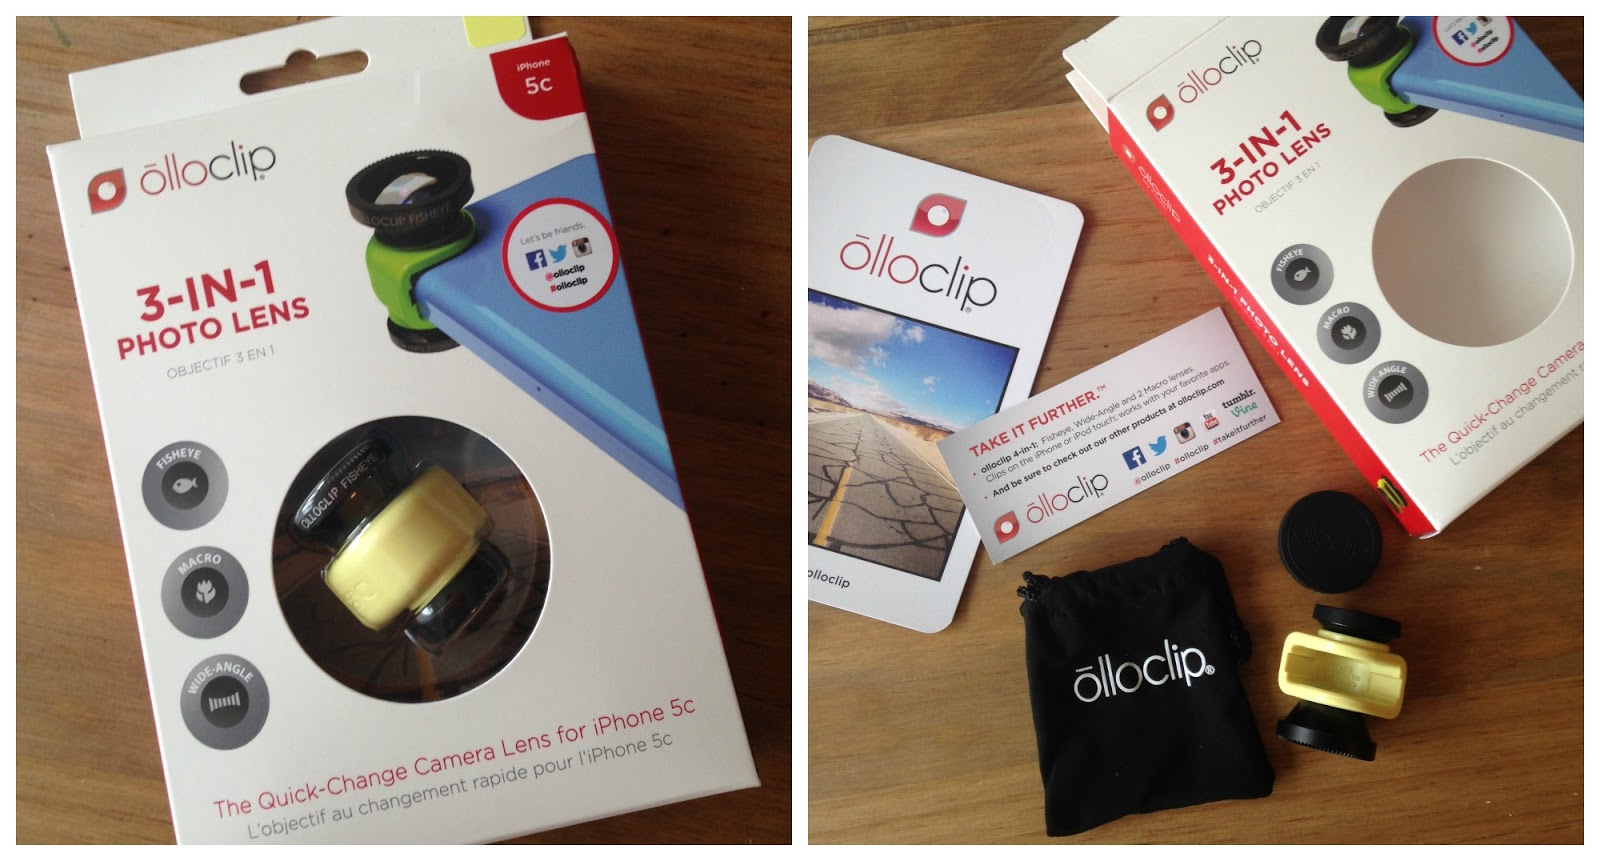 Olloclip review & giveaway!